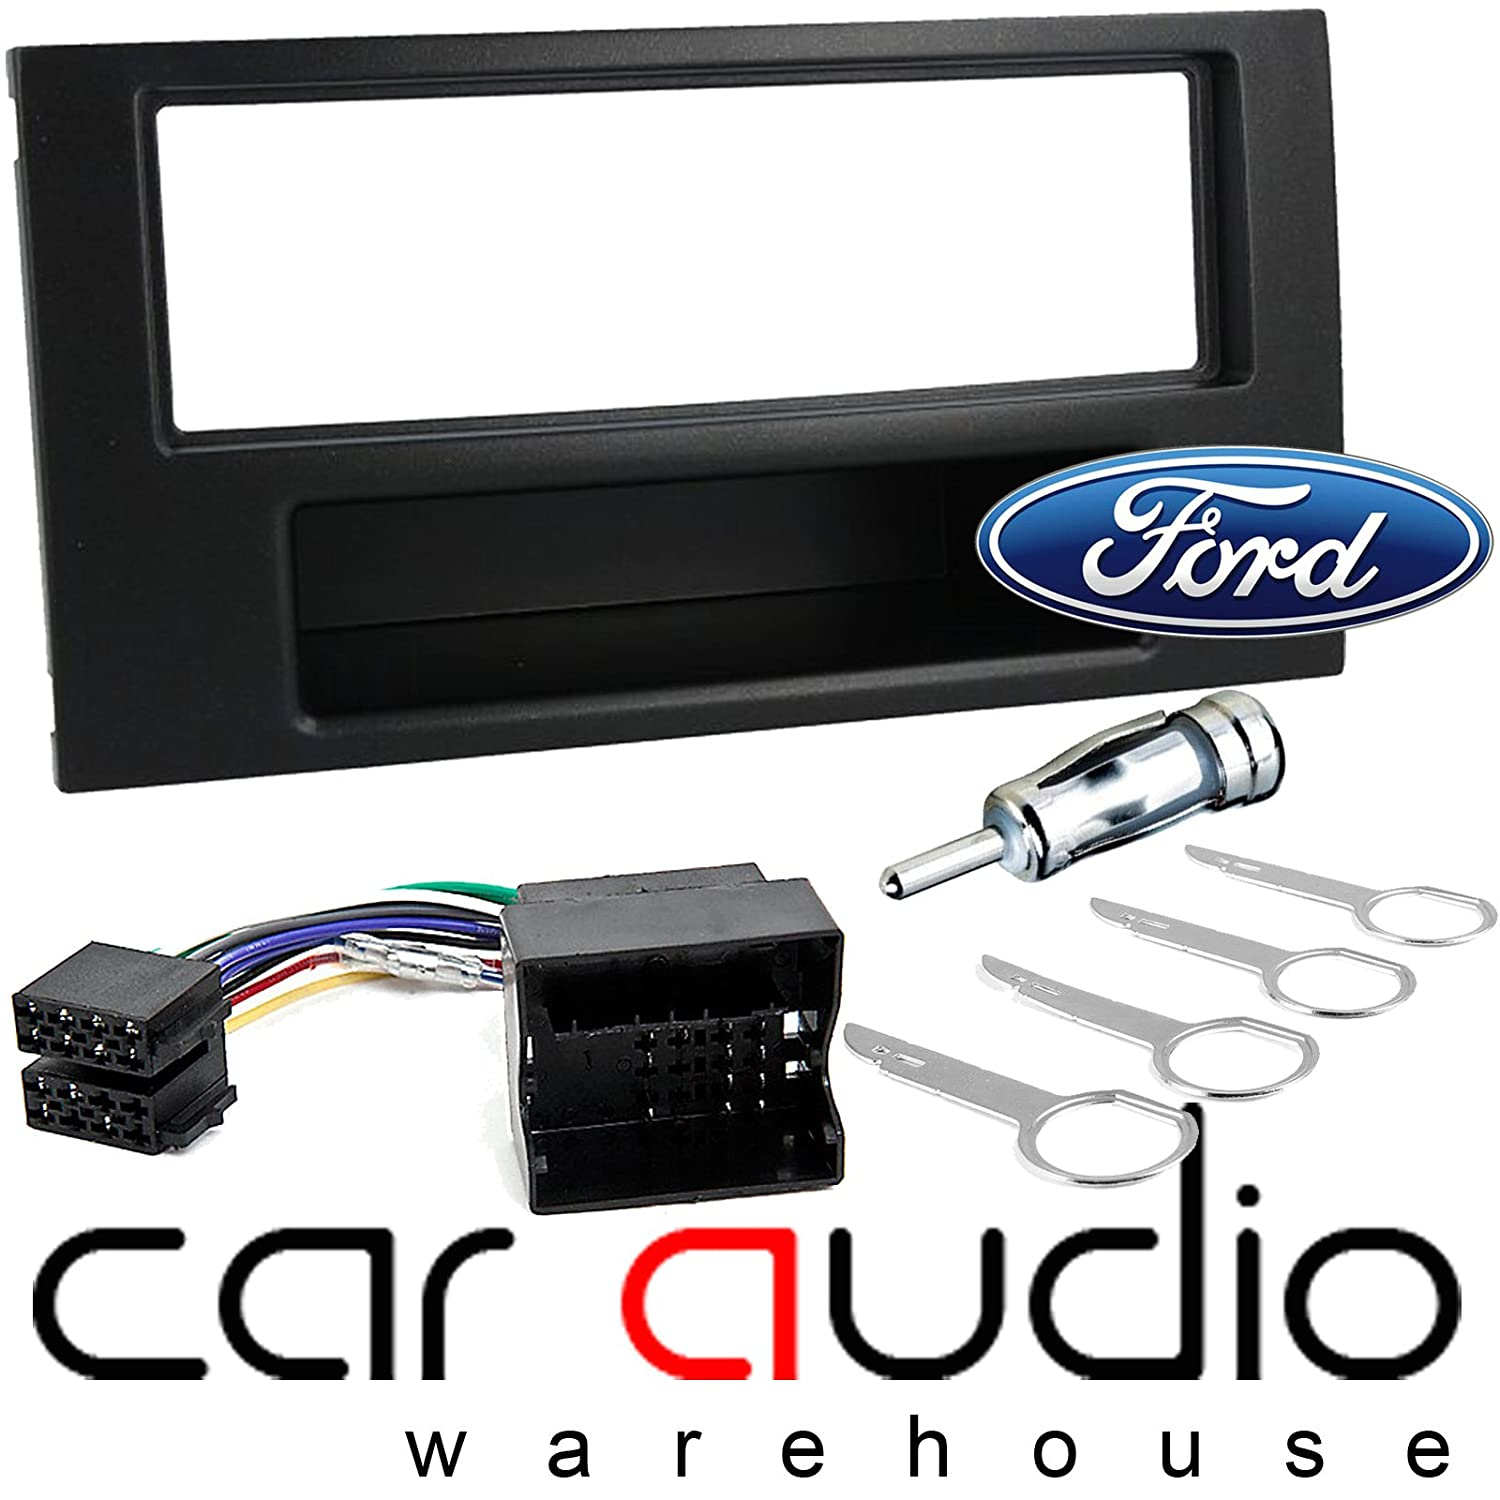 Ford C Max Connect Fiesta Focus Fusion Transit Car Stereo Radio Universal Wiring Facia Fascia Panel Harness Fitting Kit Electronics